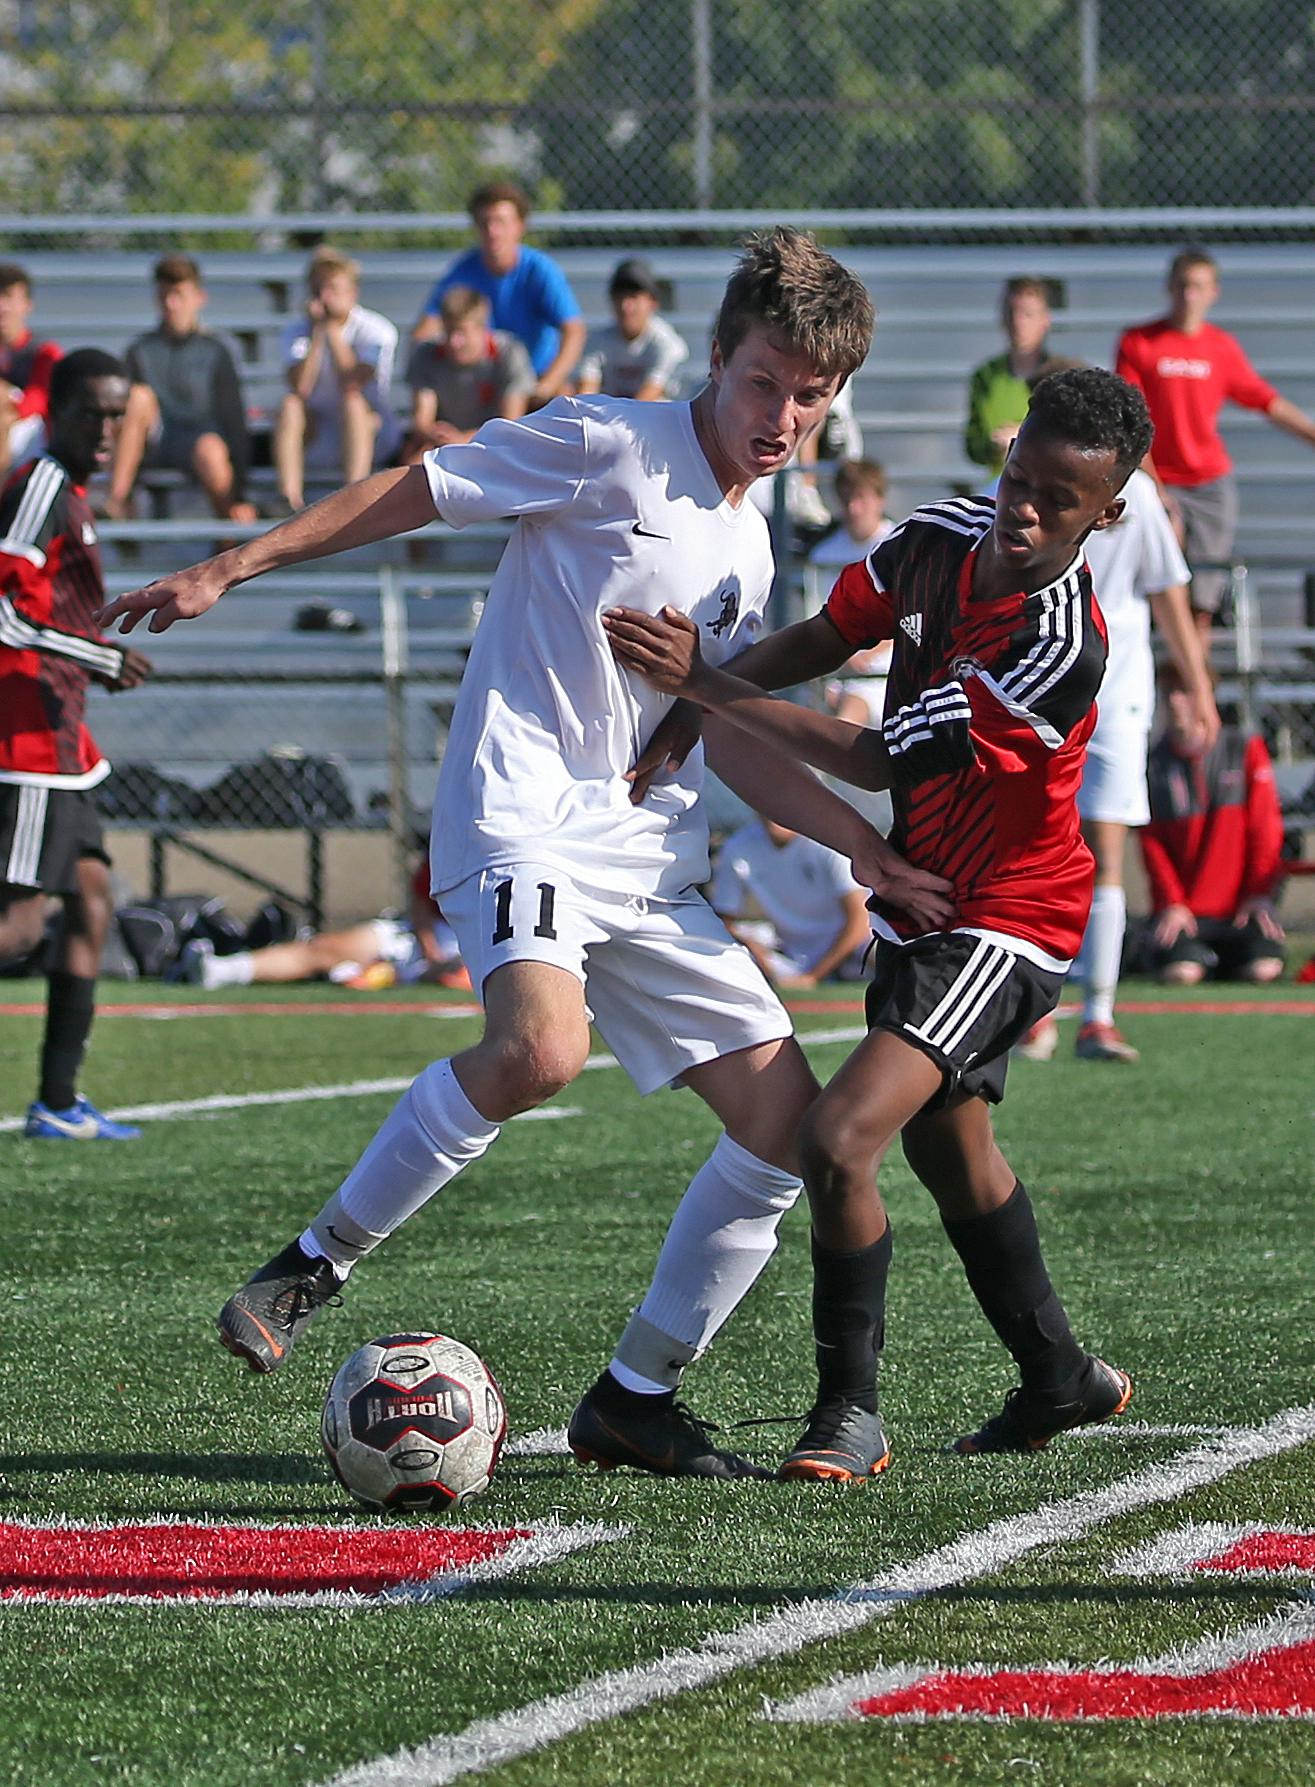 Midfielder Seth Hoffman (11) works the ball around defender Jebril Mohammed. Hoffman connected on a penalty kick in the first half to tie the score at one. Photo by Cheryl Myers, SportsEngine